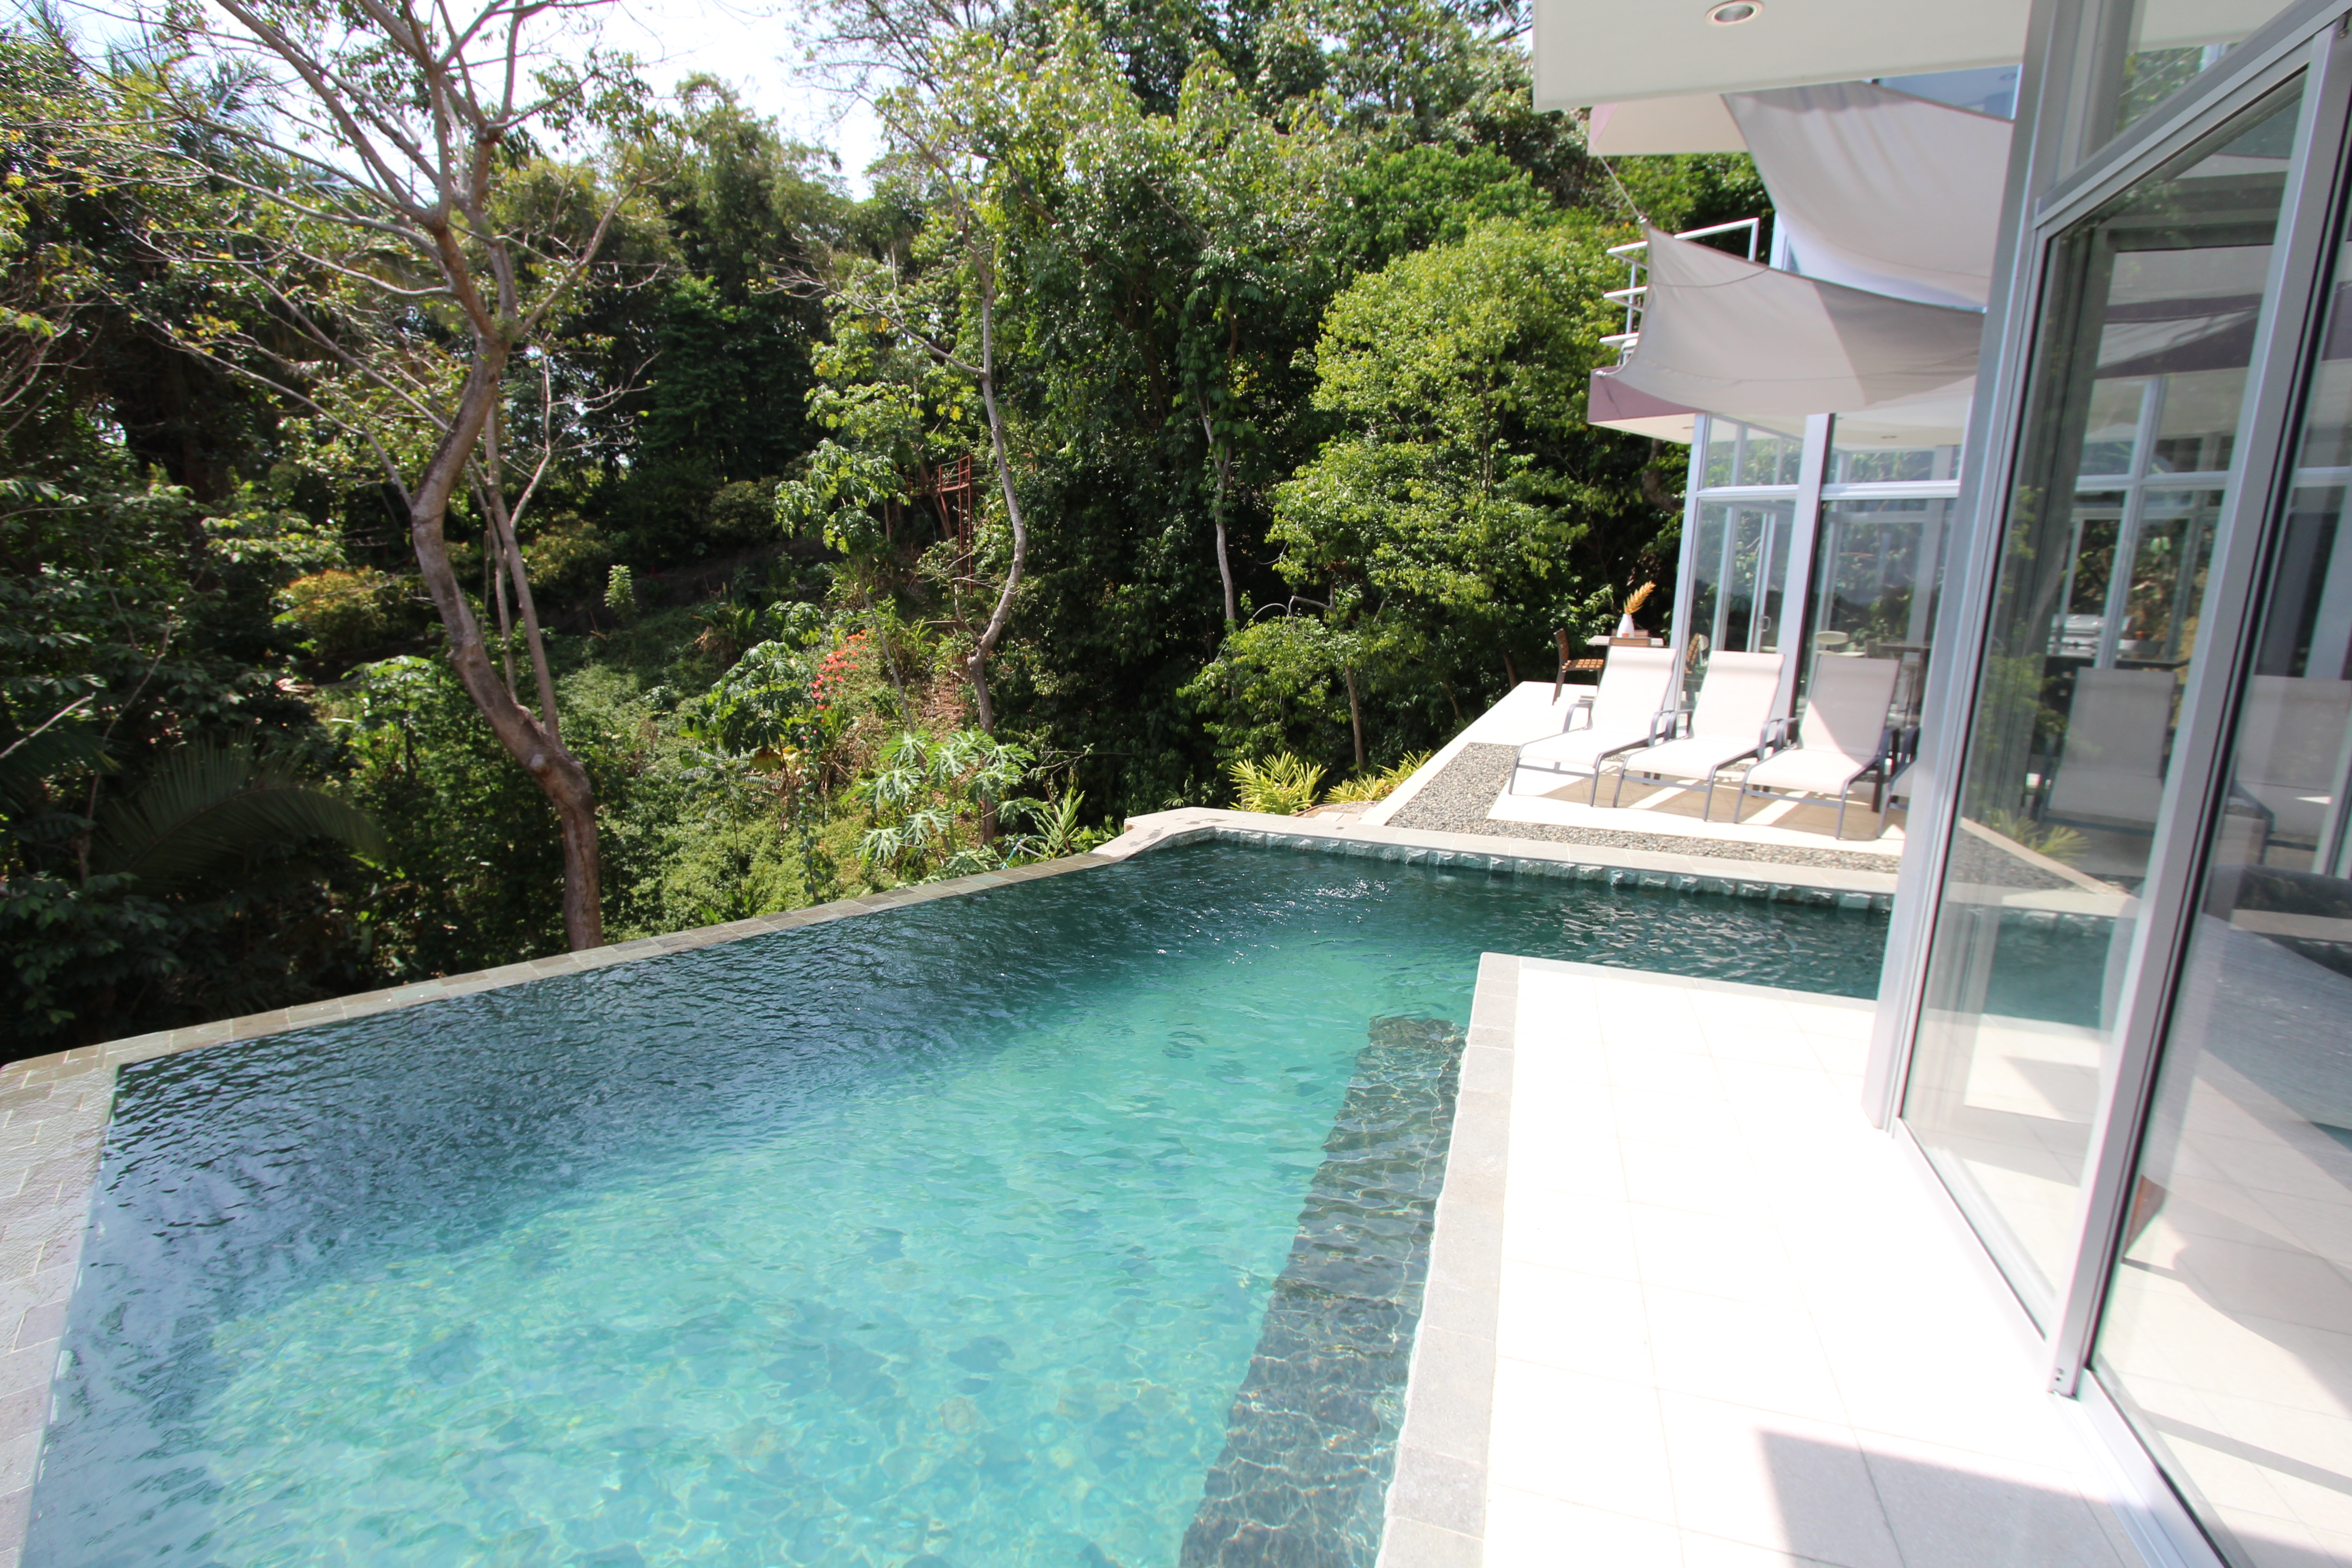 Infinity pool and jungle